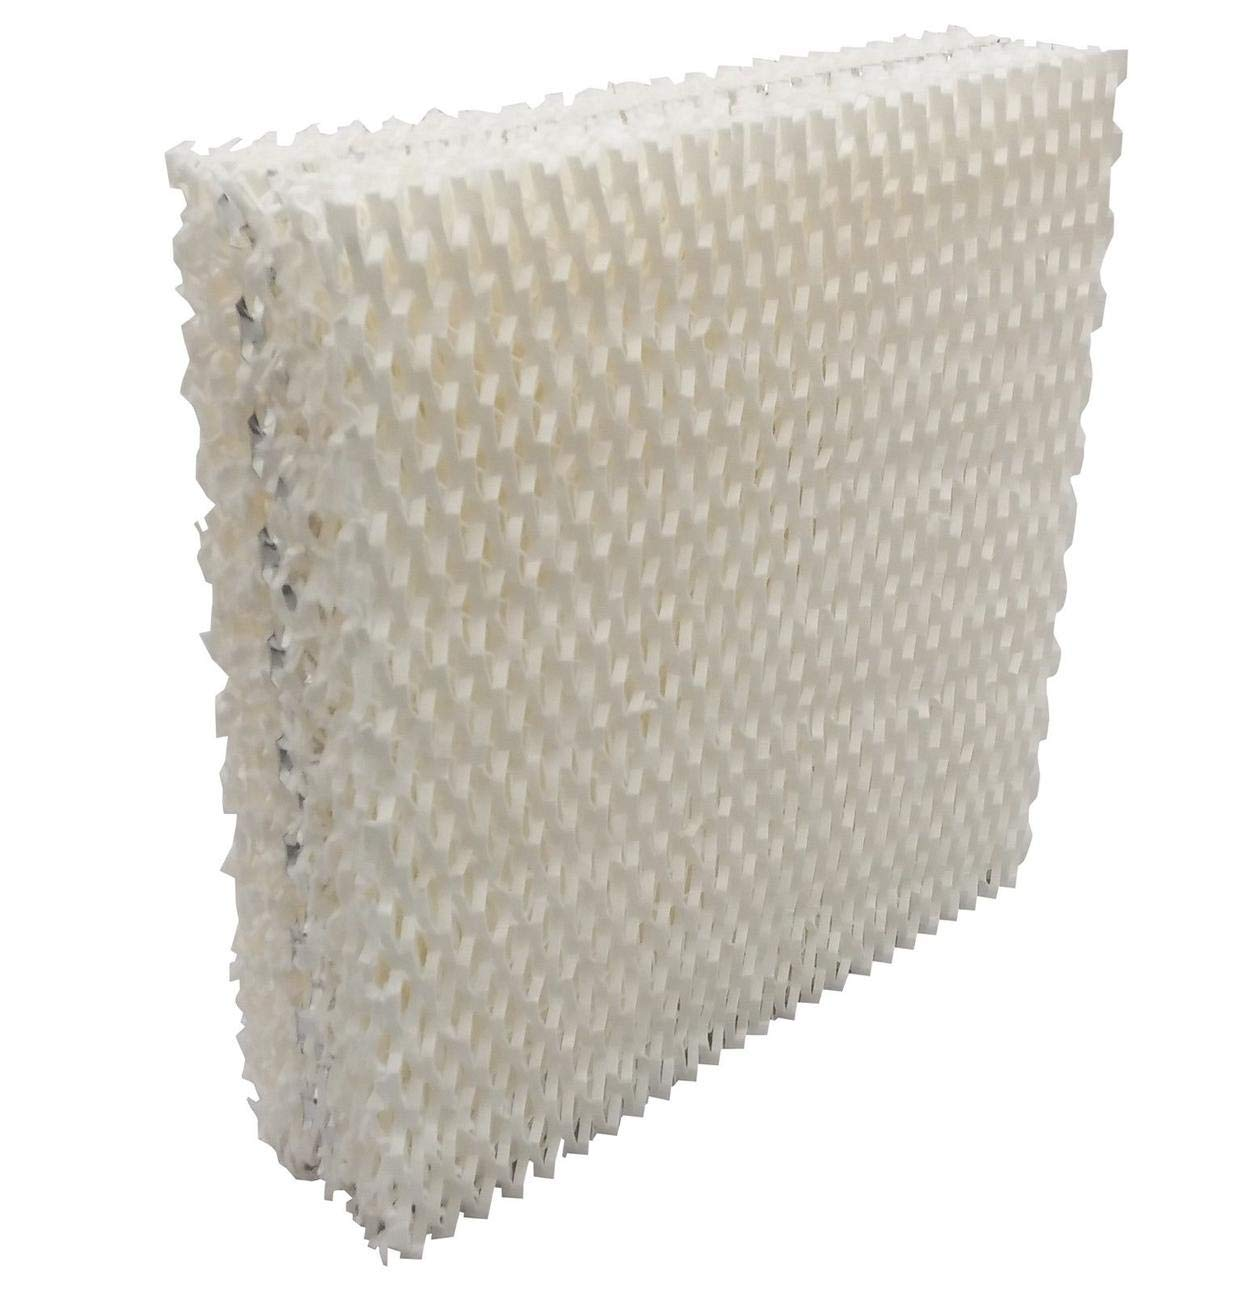 Home Humidifiers Humidifier Filter Replacement Wick for Duracraft AC-818 AC818